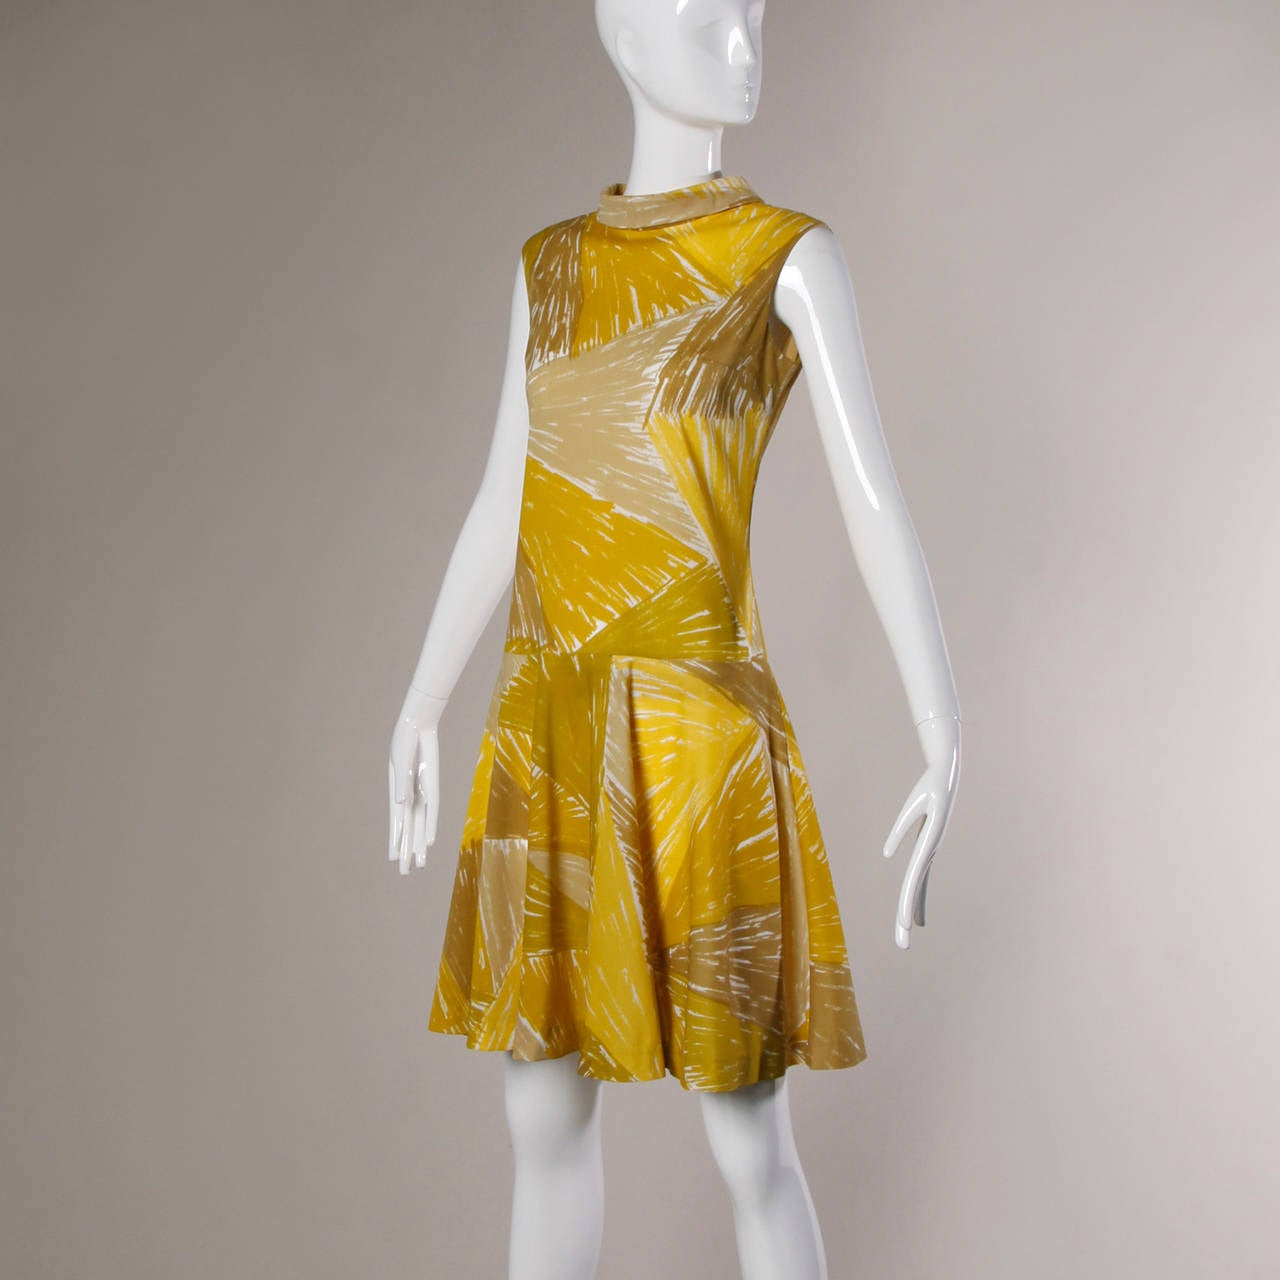 Vera Neumann Vintage 1960s Yellow Mod Painterly Print Mini Dress 3